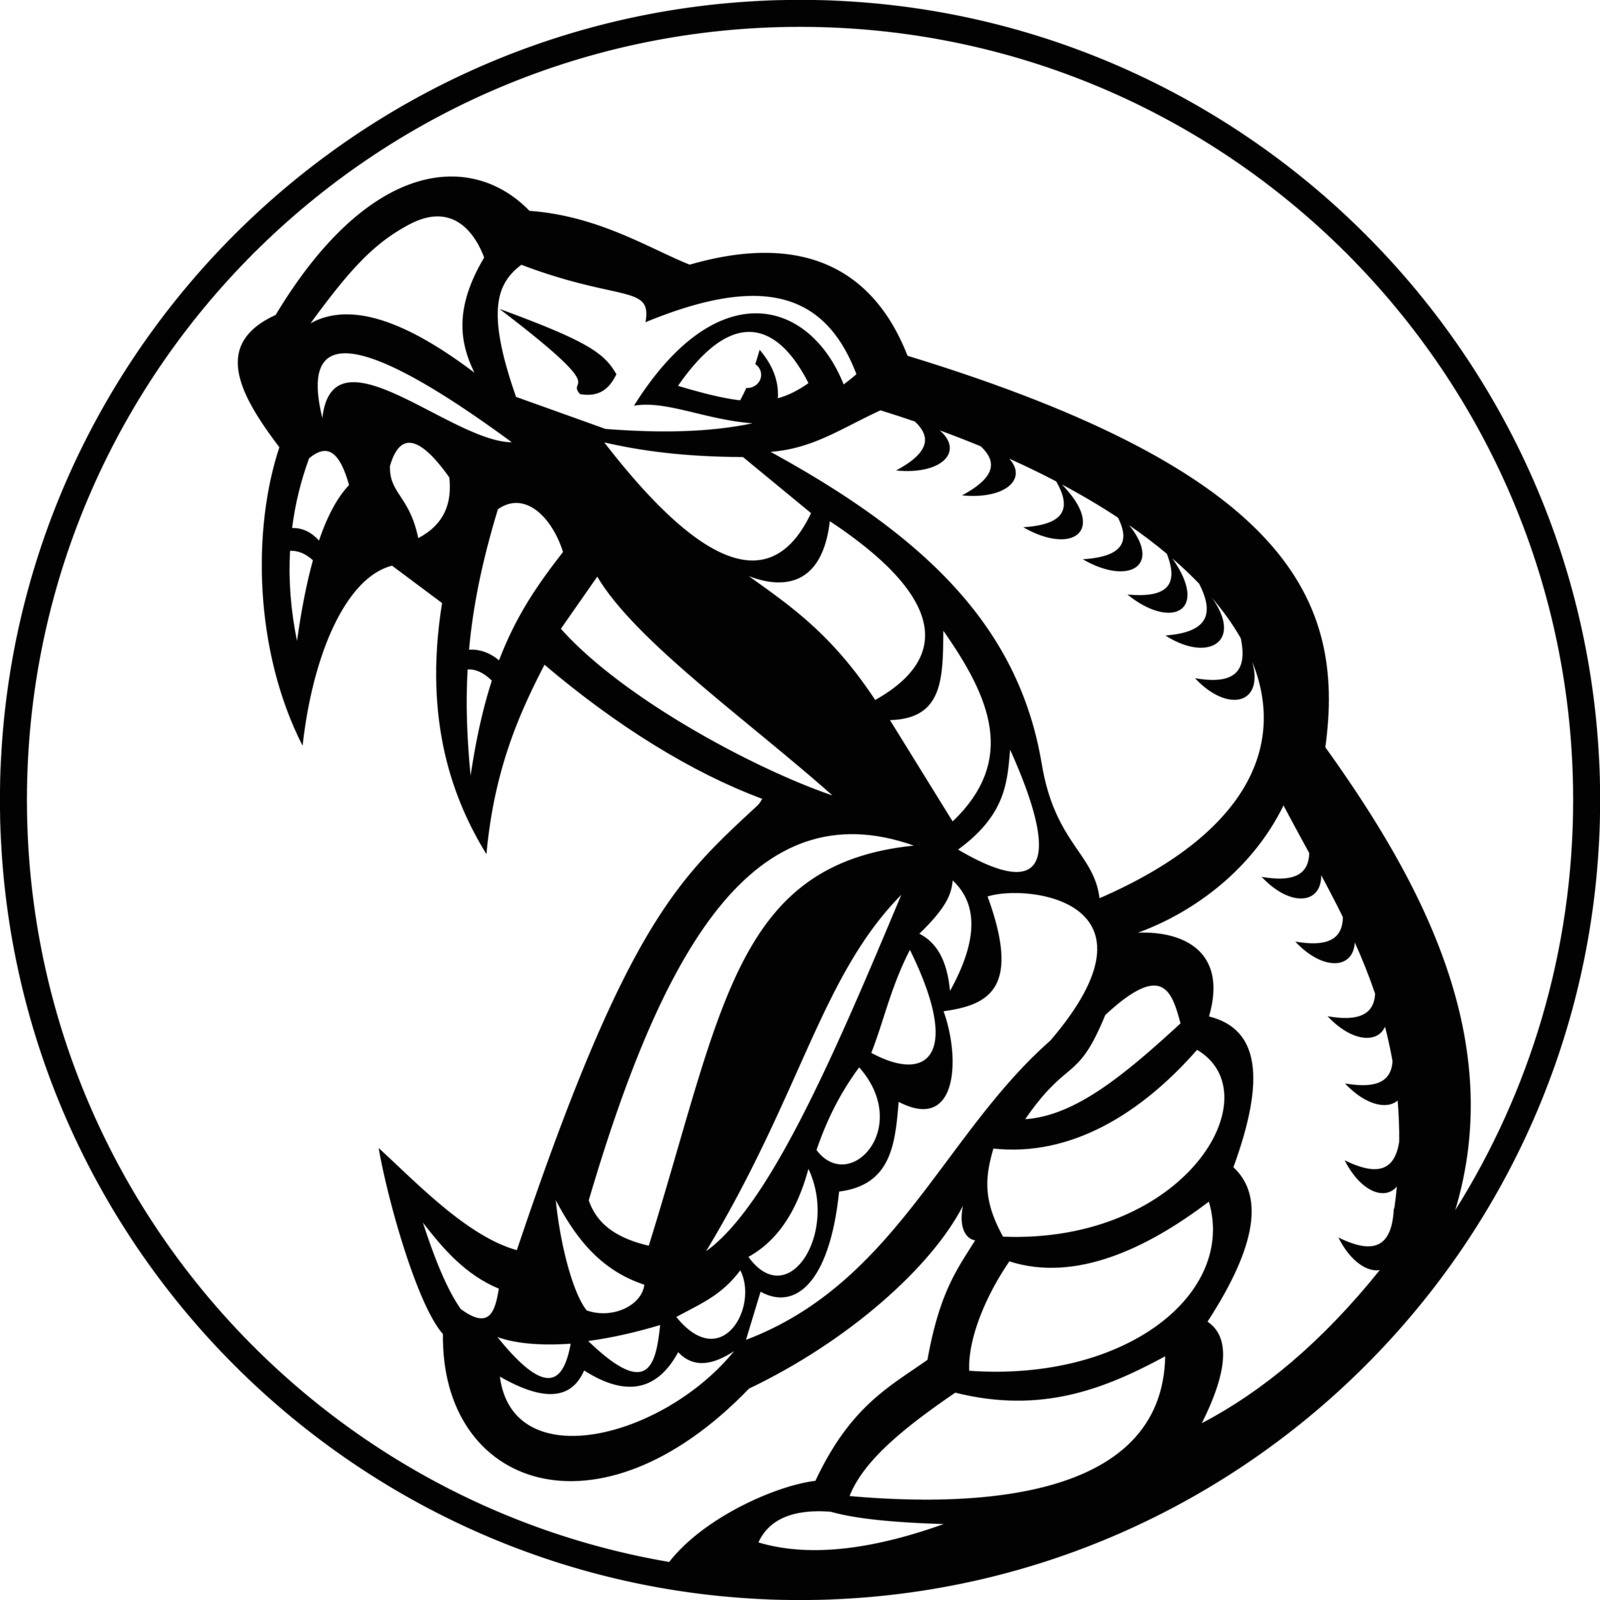 Mascot illustration of an aggressive copperhead or Agkistrodon contortrix, a species of venomous snake member of subfamily Crotalinae or pit viper set inside circle baring fangs in retro style.